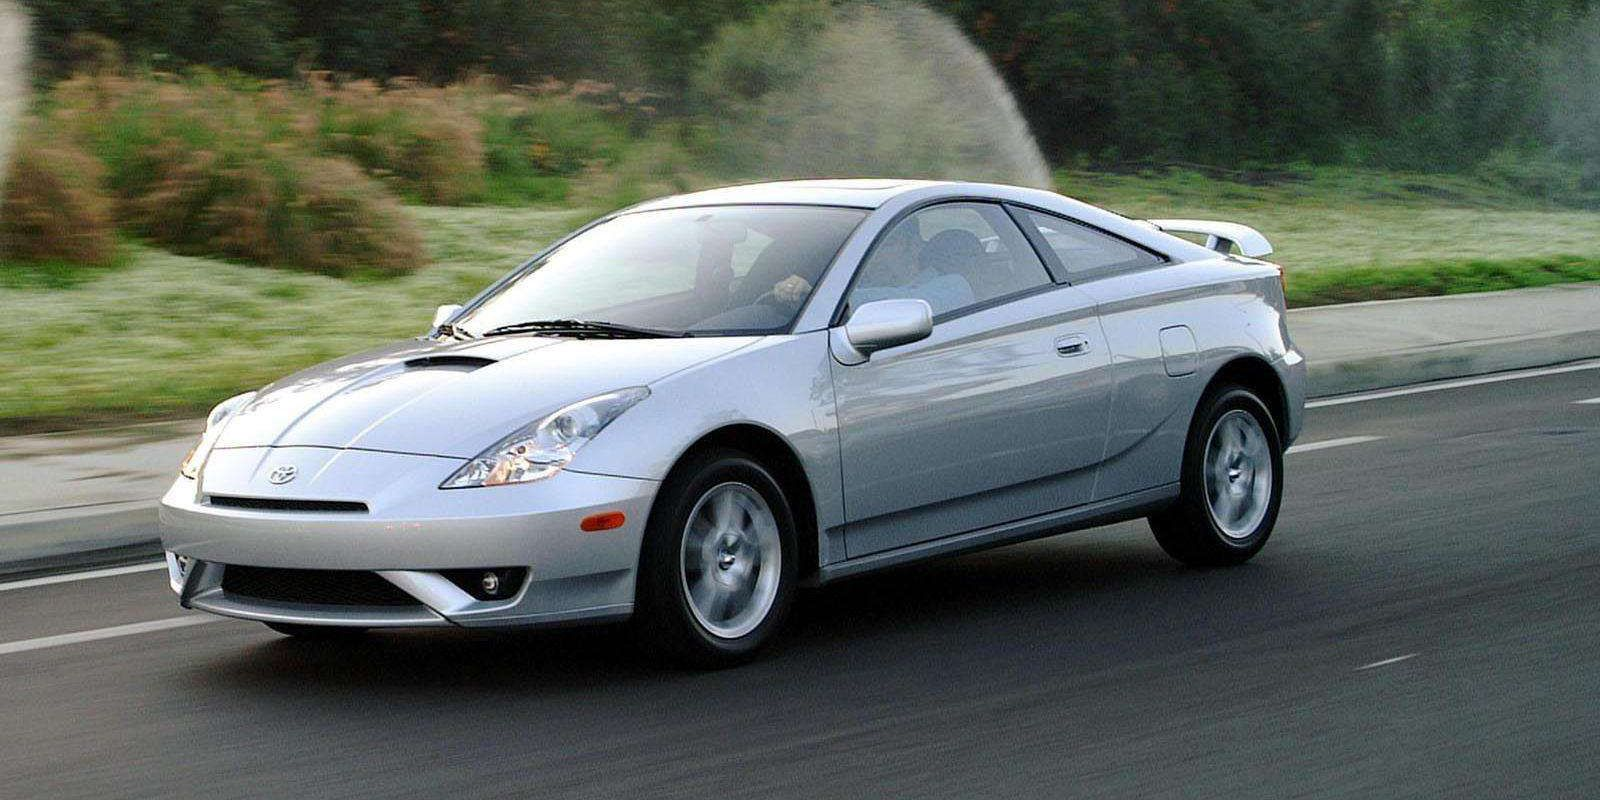 <p>...became this weird looking car with headlights bigger than most cars.</p>